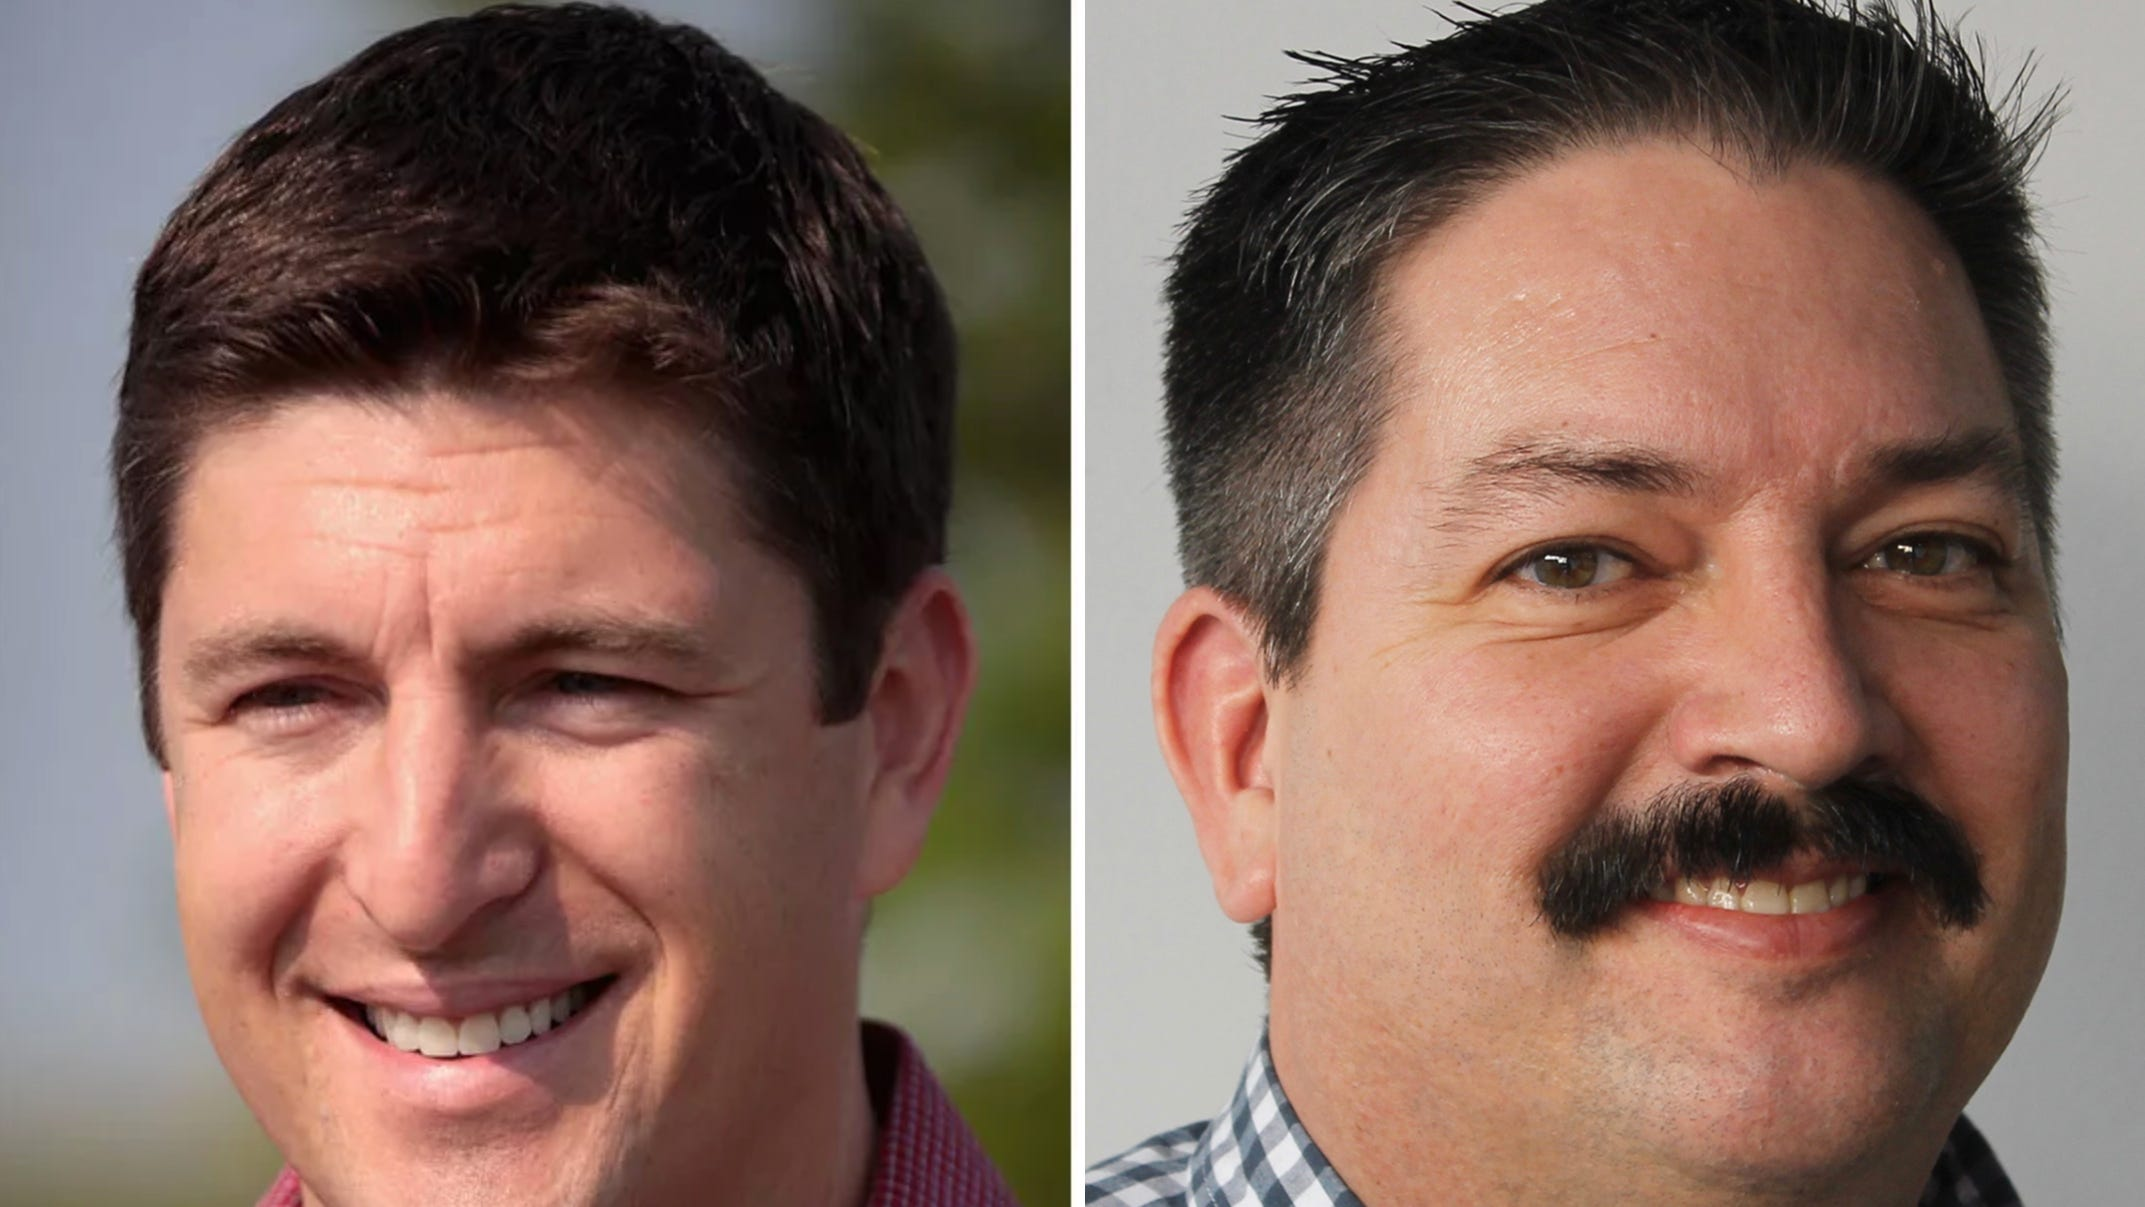 Republican group launches second attack TV ad against Randy Bryce -- this one featuring his brother